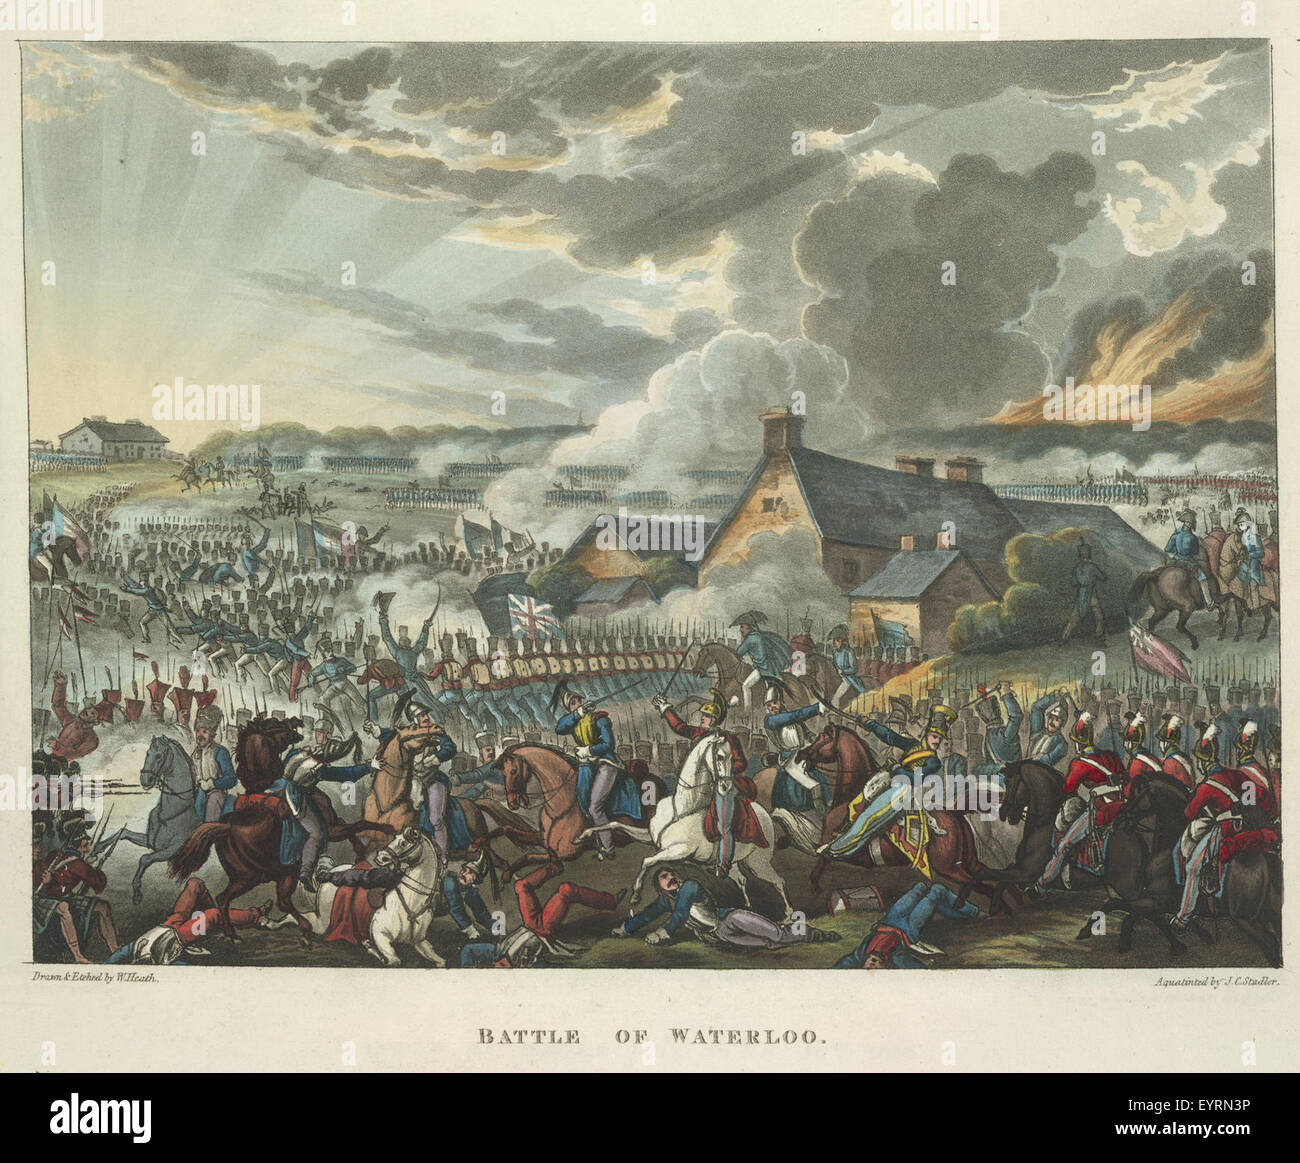 The wars of Wellington, a narrative poem ... - caption: 'The Battle of Waterloo, June 18th 1815. Depicting Arthur - Stock Image